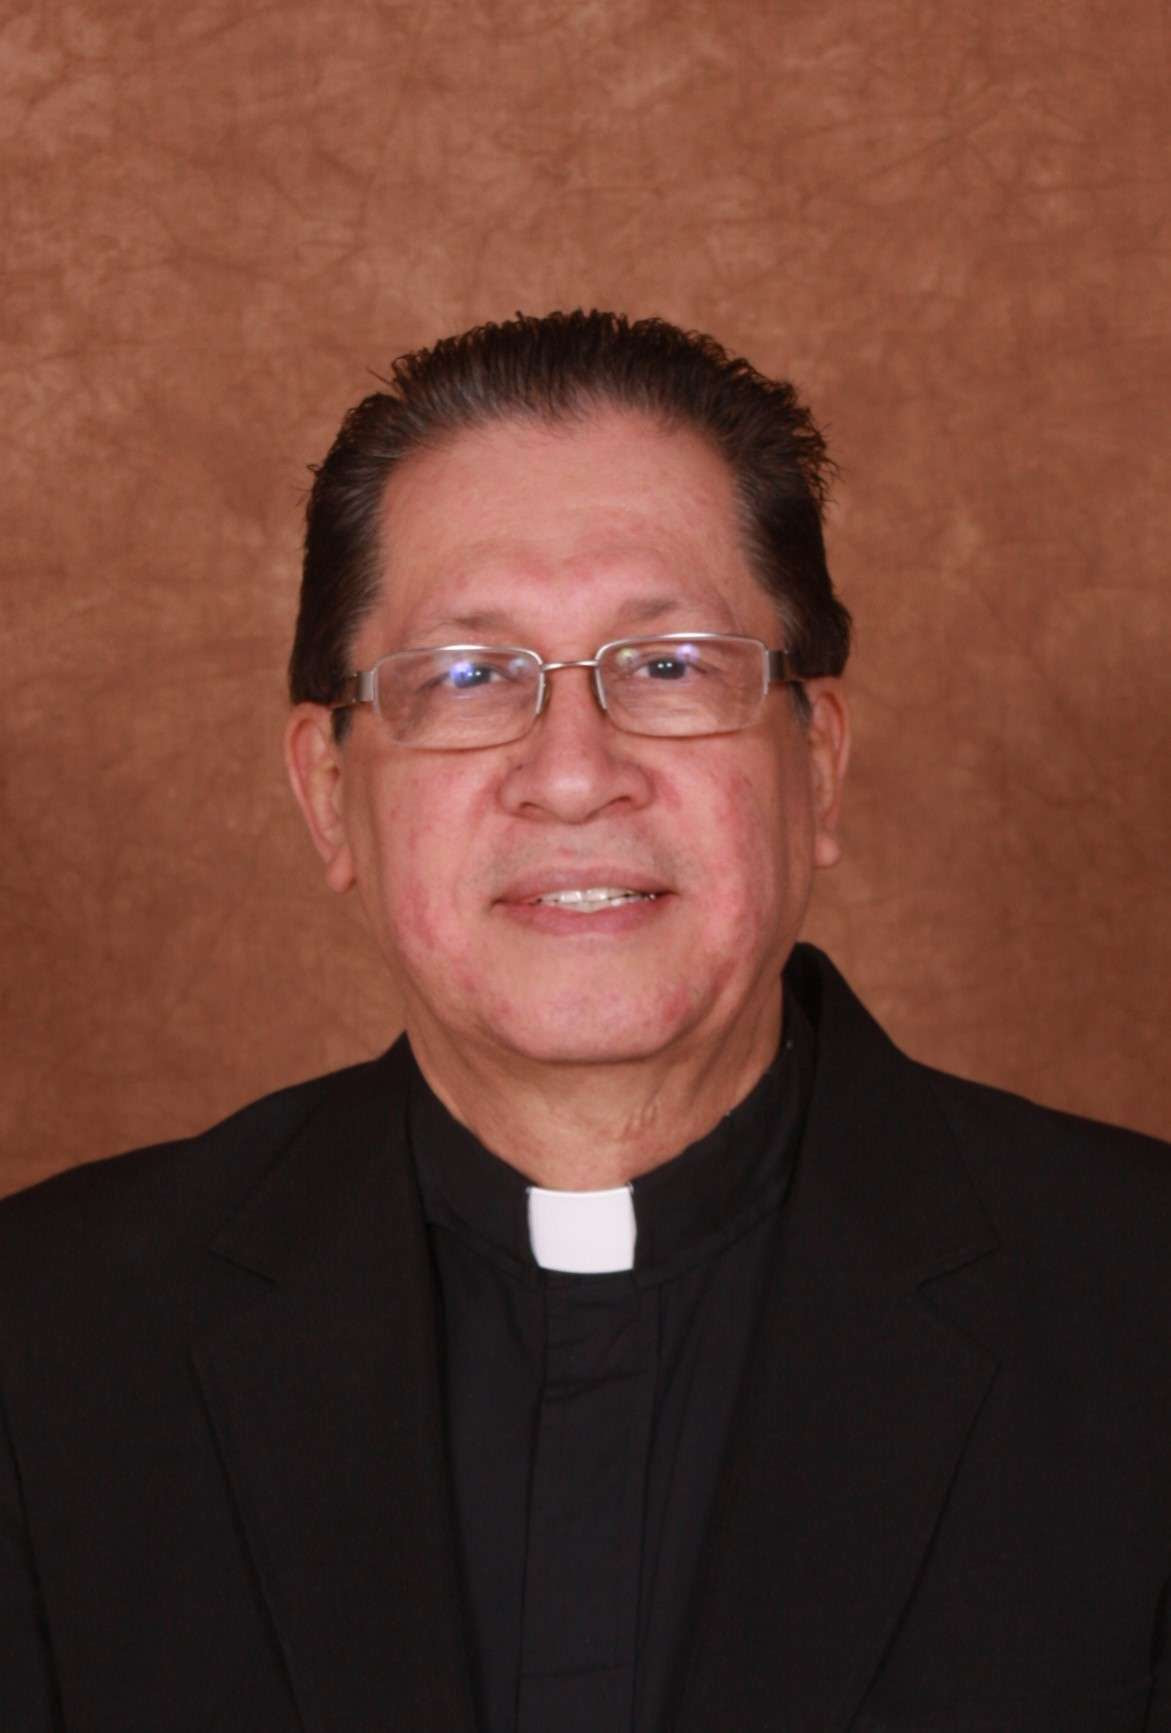 Bishop Homily for Fr. Ramírez Funeral 12_9_20